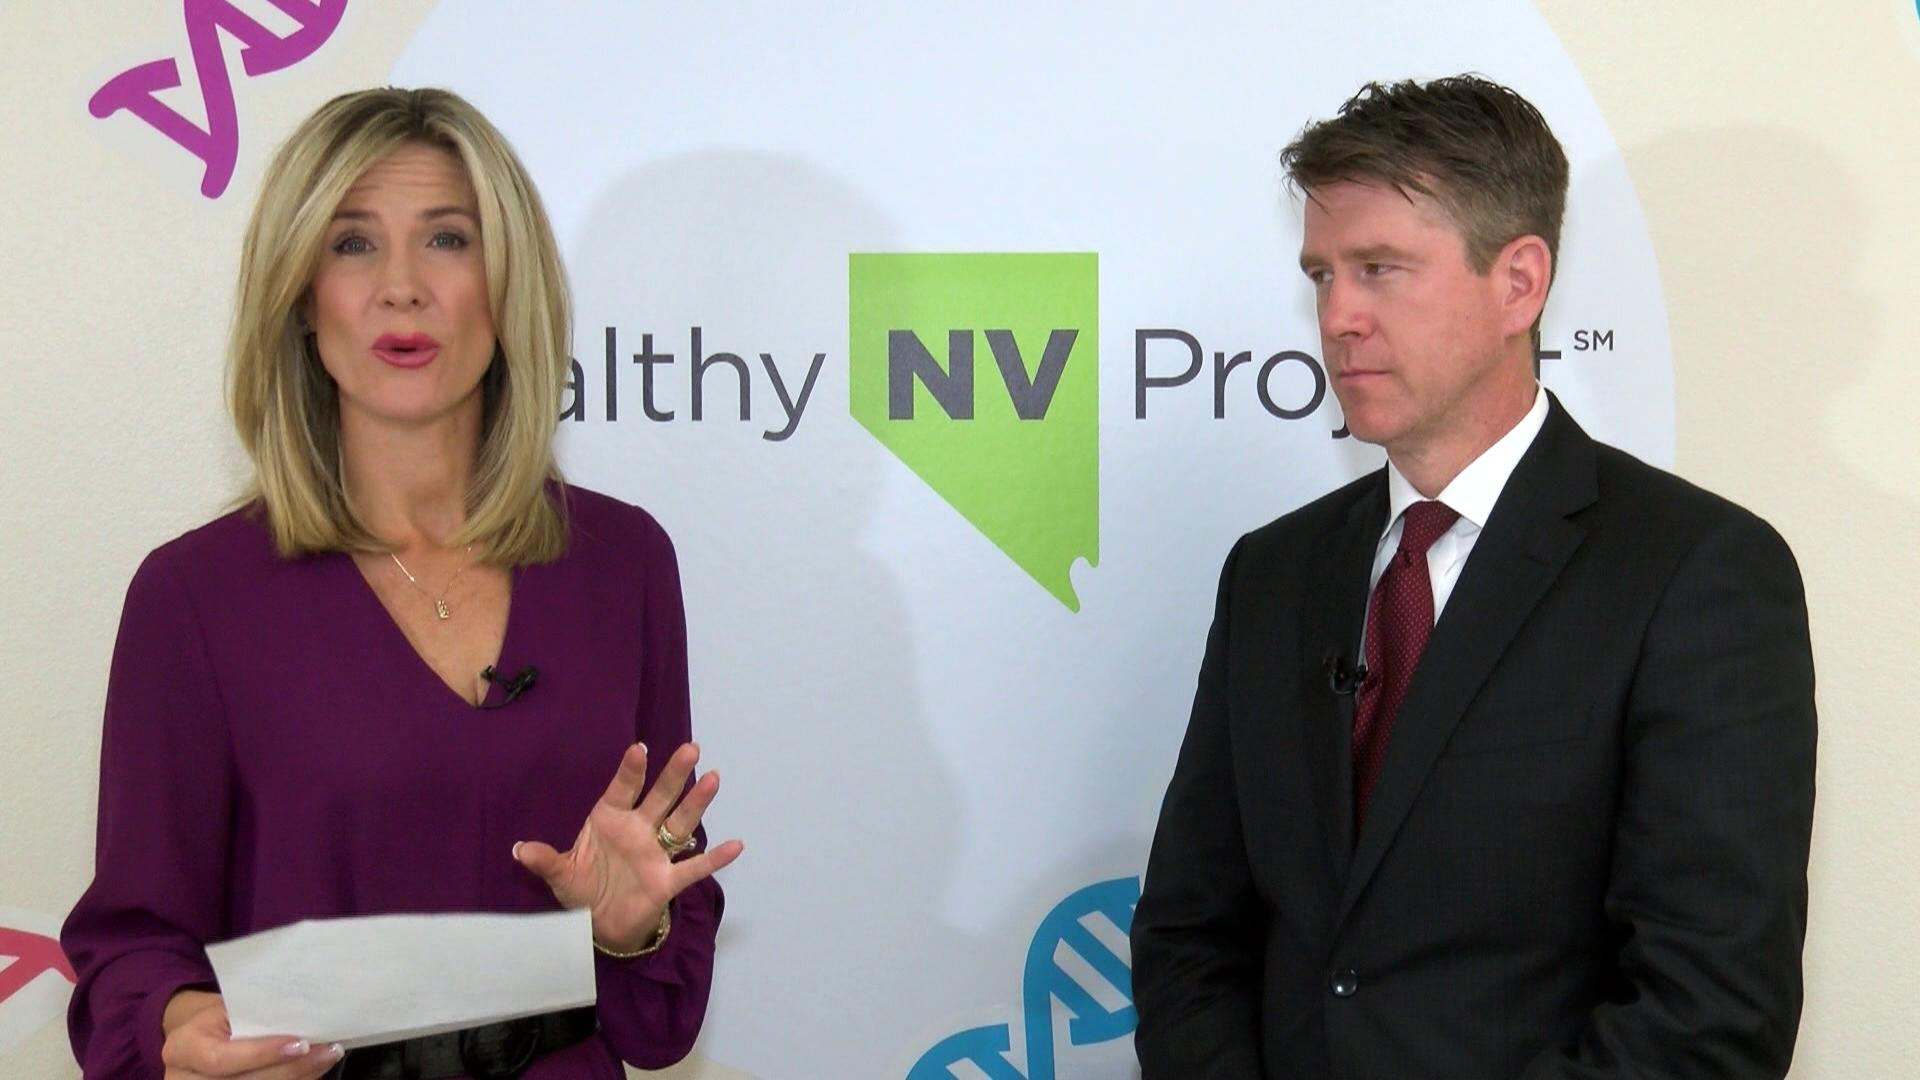 BestMedicine:  Healthy Nevada Project Returning Clinical Results